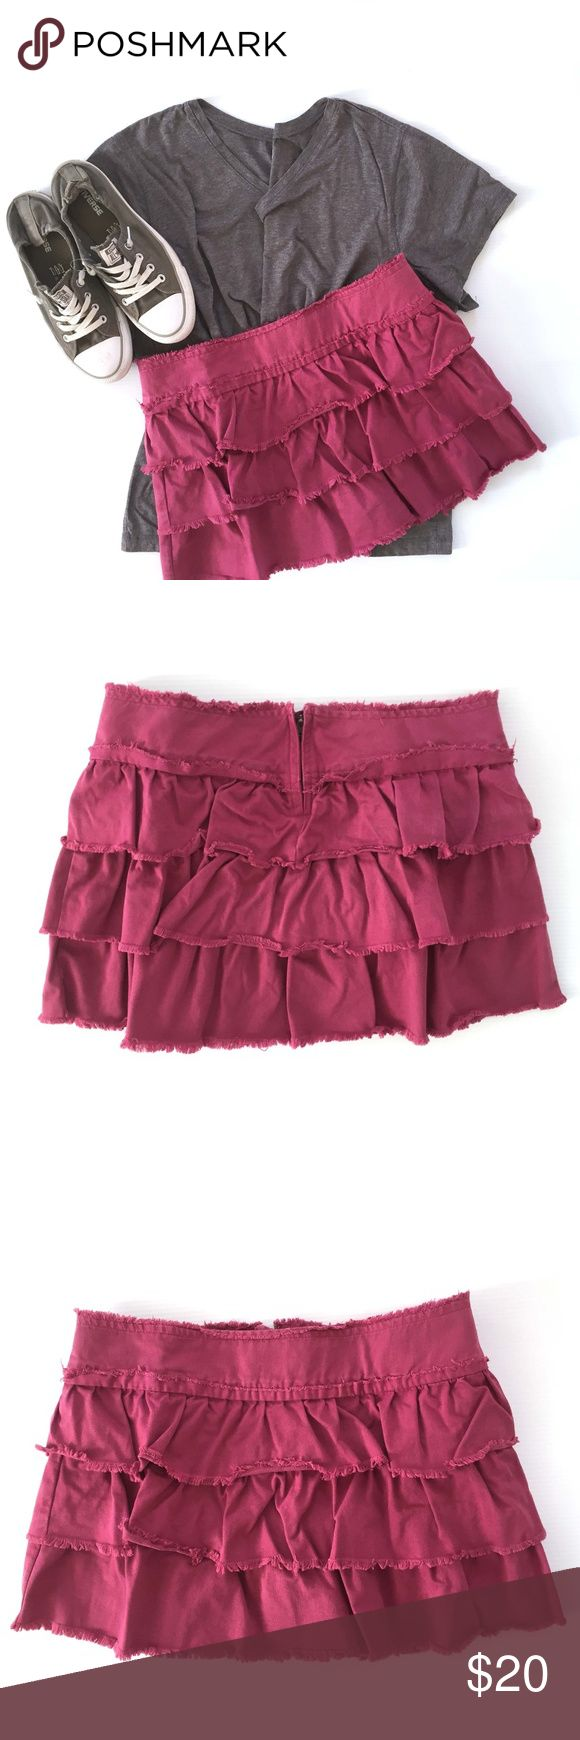 """Juicy Couture Jeans Fuchsia Distressed ruffle mini Juicy Couture Jeans Fuchsia Distressed ruffle mini skirt.  RN#92918, Style 3443 Cut #610660 Size M Approx. Measurements: Waist 16.5"""""""" Length 13.5"""""""" - both taken with item laying flat.  Materials: 100% Cotton- Machine Wash Super cute skirt with distressed edge ruffle. no stains or holes but color is a very faded fuchsia! Thanks for looking! Juicy Couture Skirts Mini"""